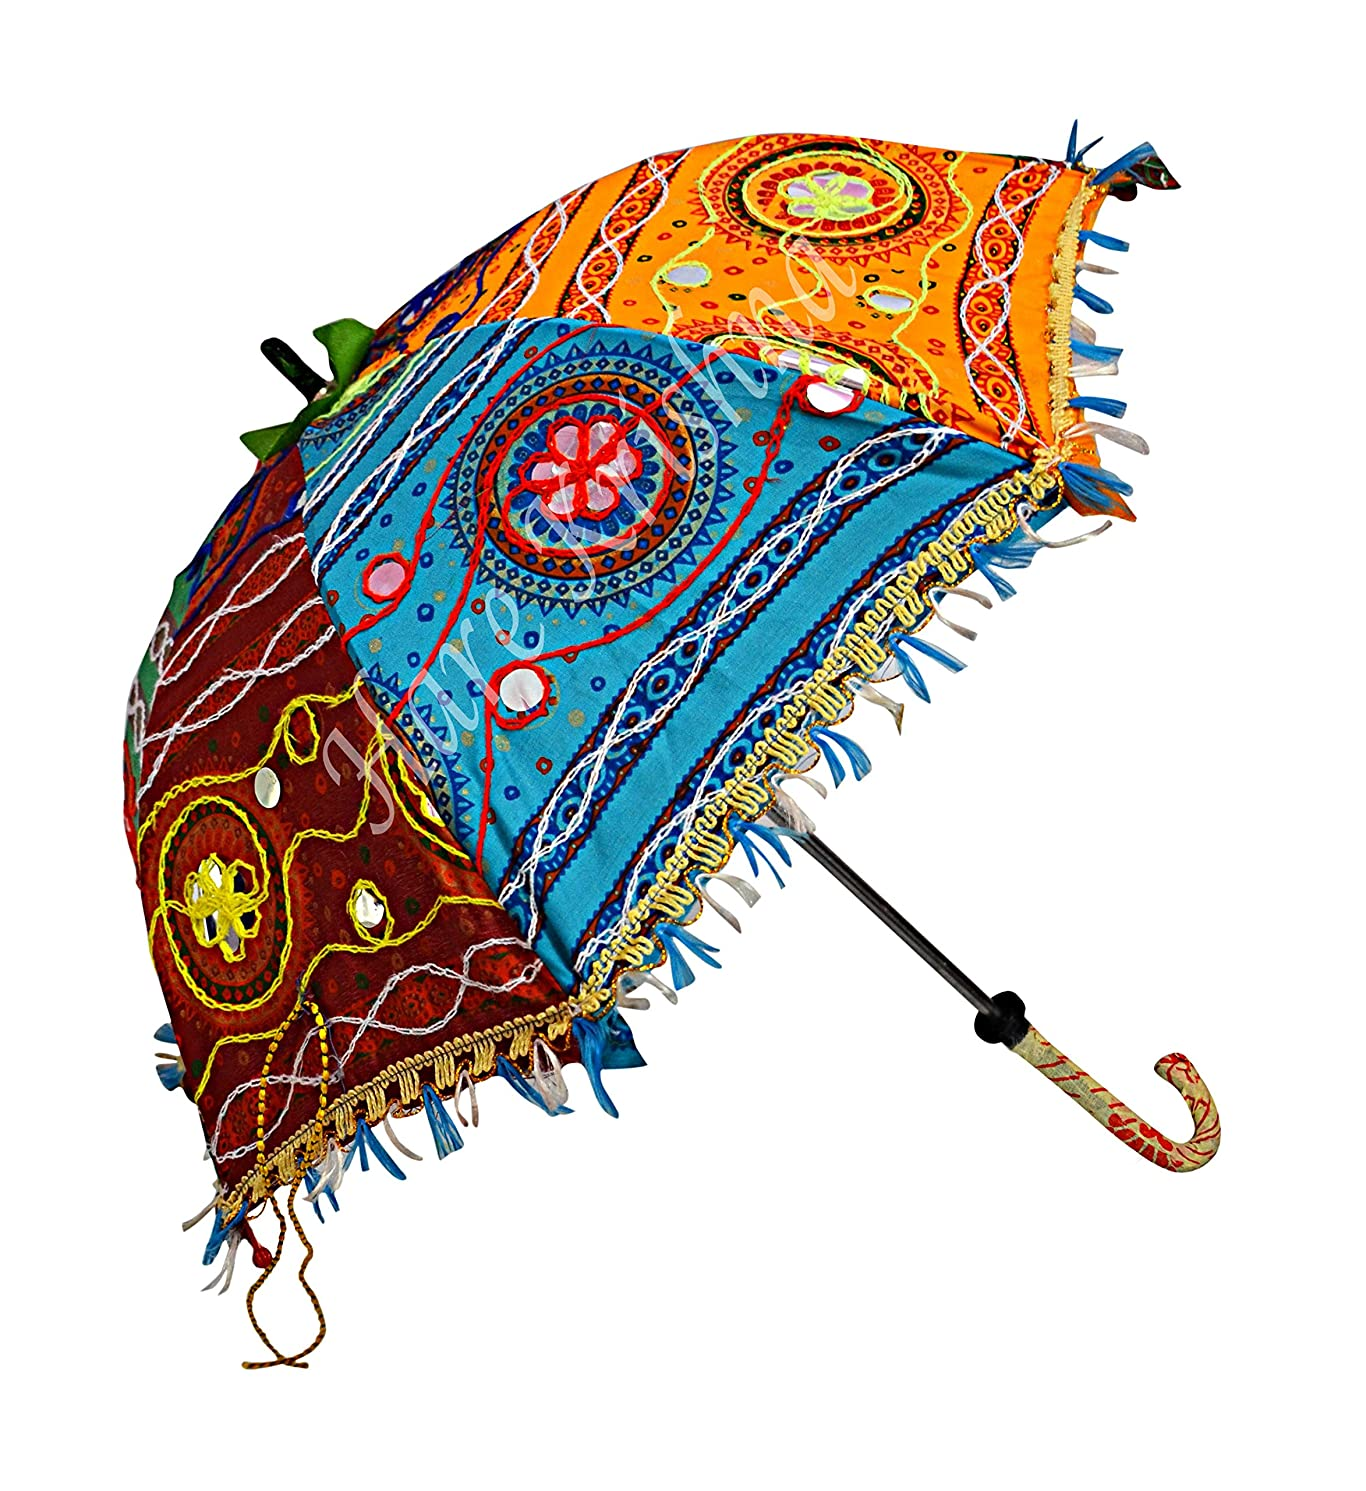 Rajasthani Hand Embroidery Design Cotton Umbrella Women Fashion Kids Gifts Parasol (Multi Color) 24 x 28 Inches